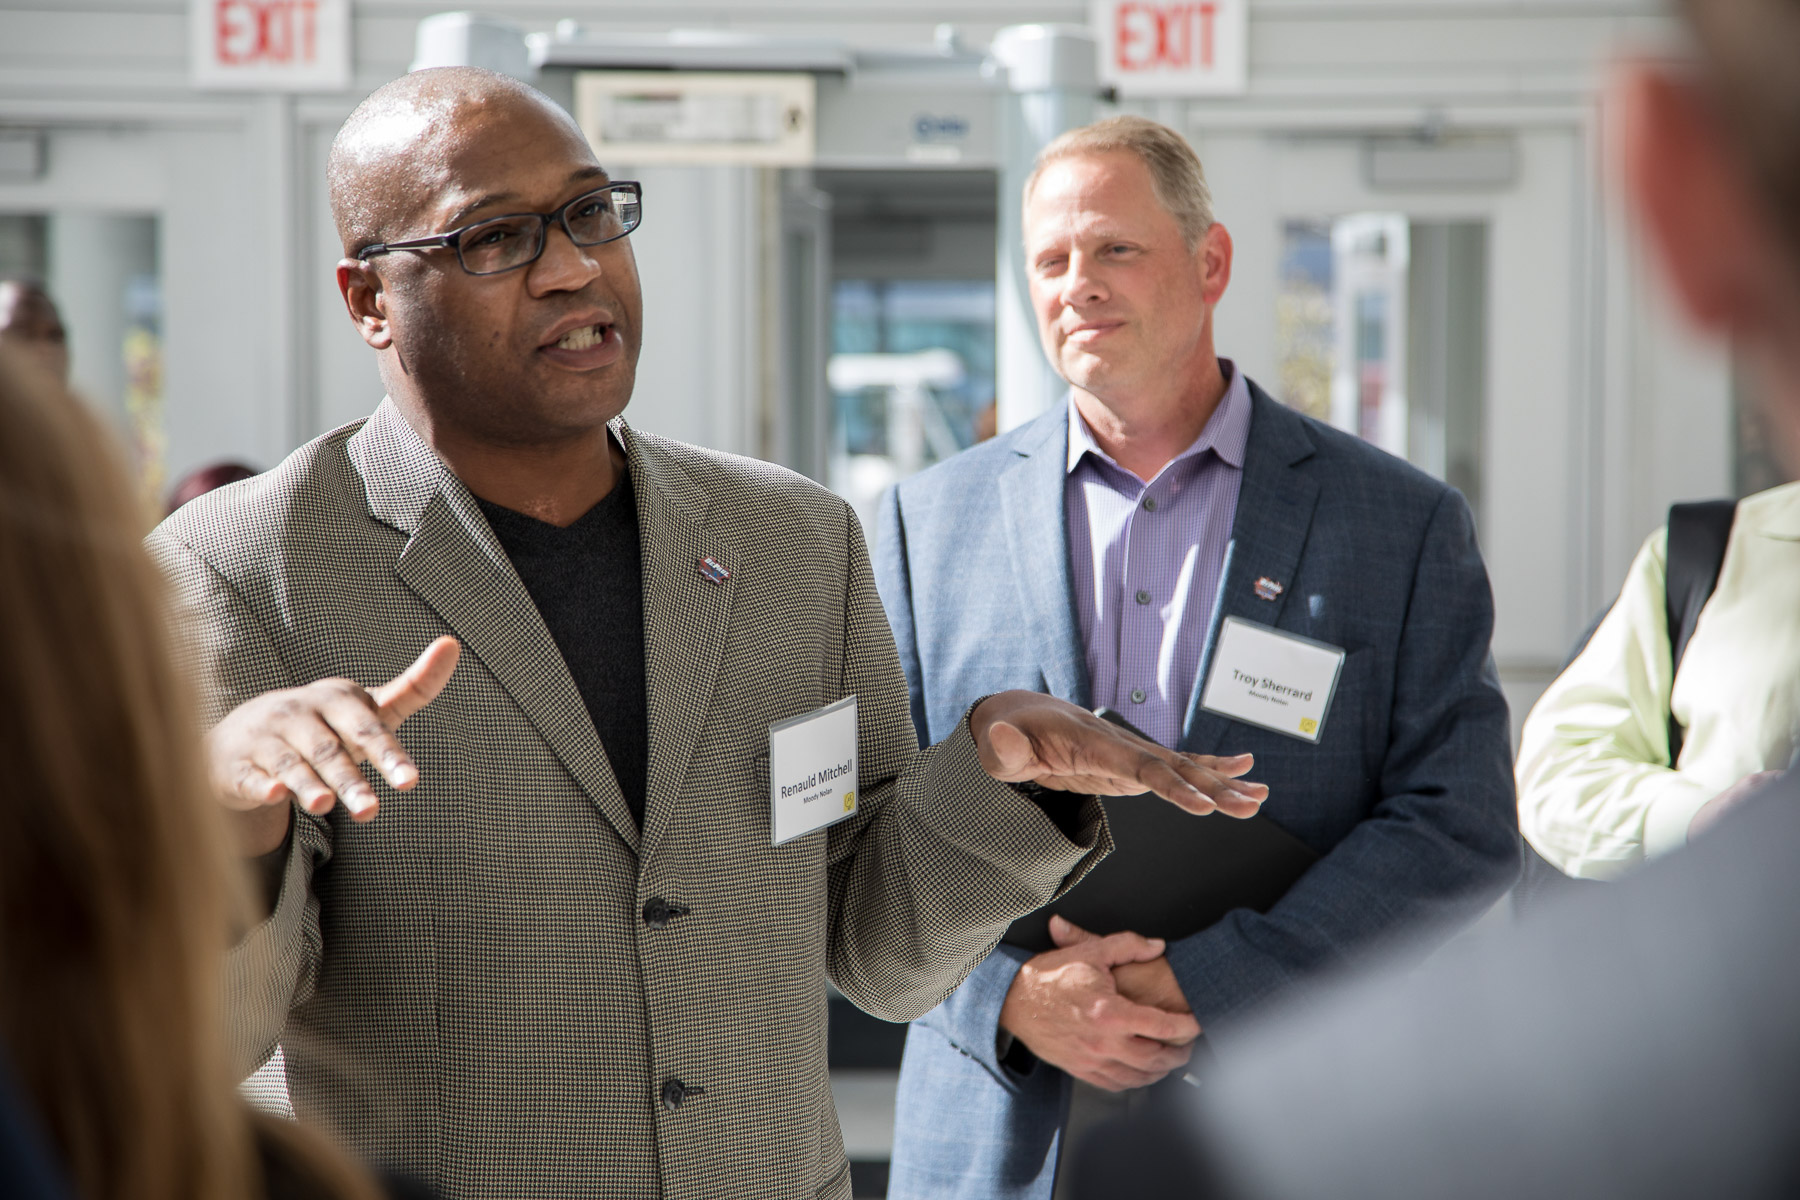 Renauld Mitchell, partner and director of operations in Chicago and Washington for Moody Nolan, told attendees about how the arena was designed and constructed. He was joined by Troy Sherrard (right) from Moody Nolan. (DePaul University/Jeff Carrion)